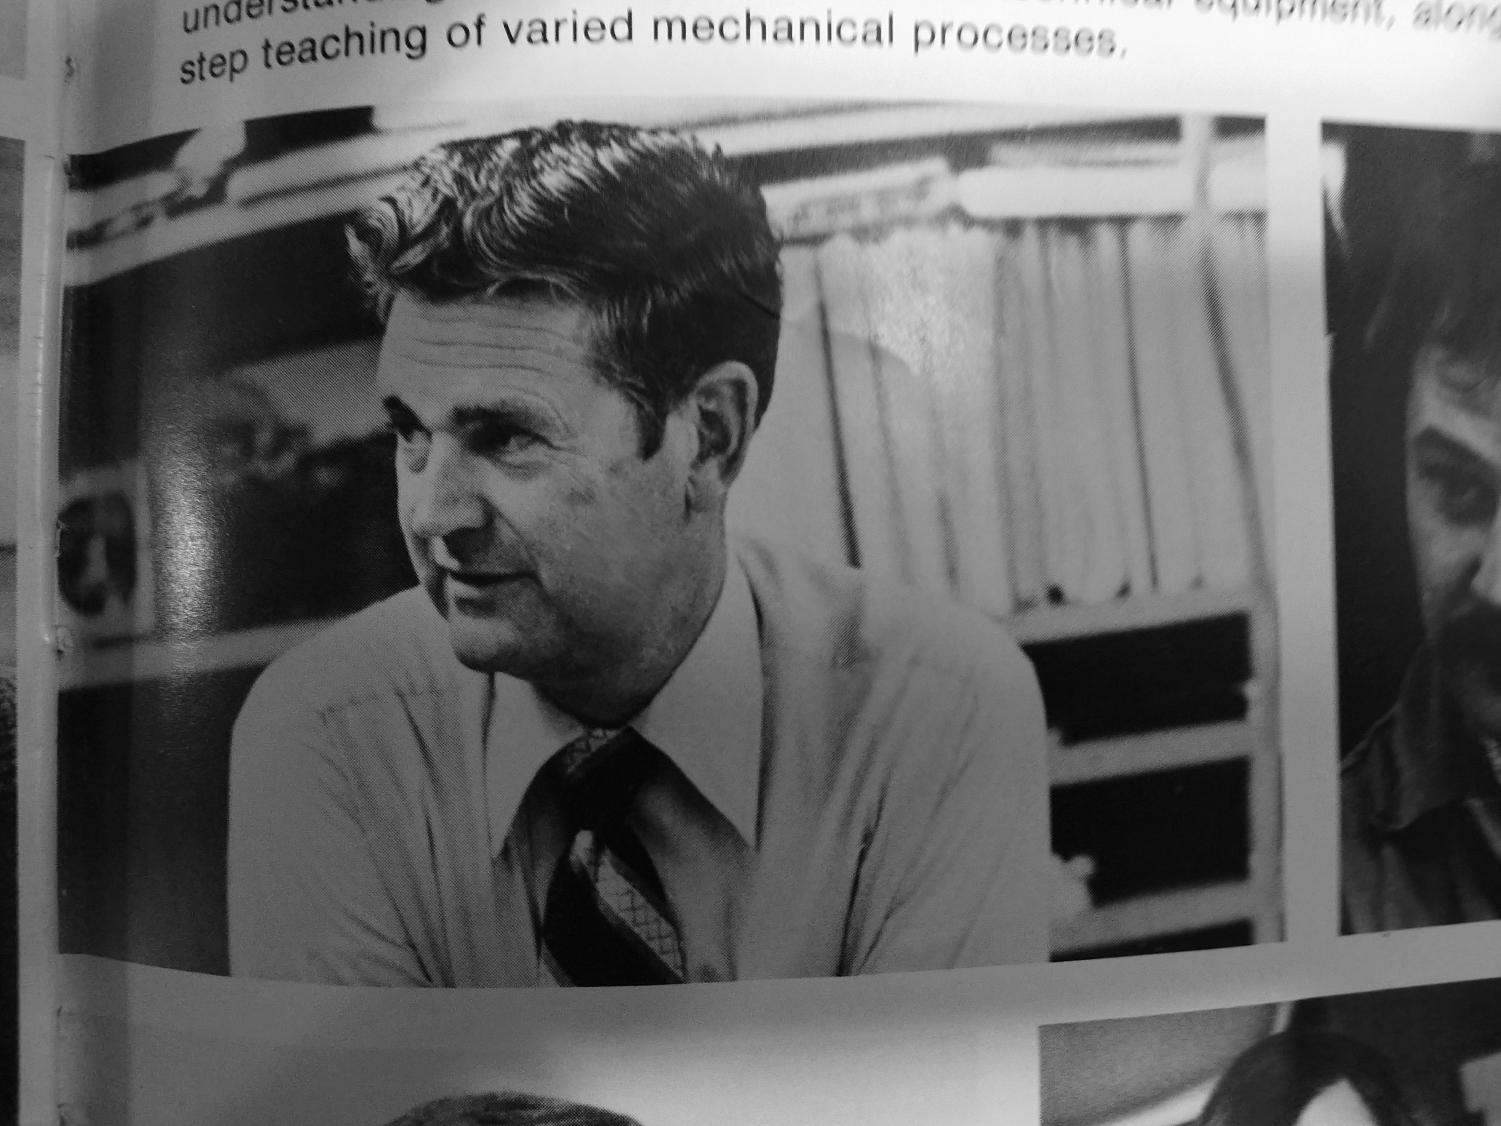 McIlhenny is pictured in the 1974 Schreiber yearbook as chair of the Technology department.